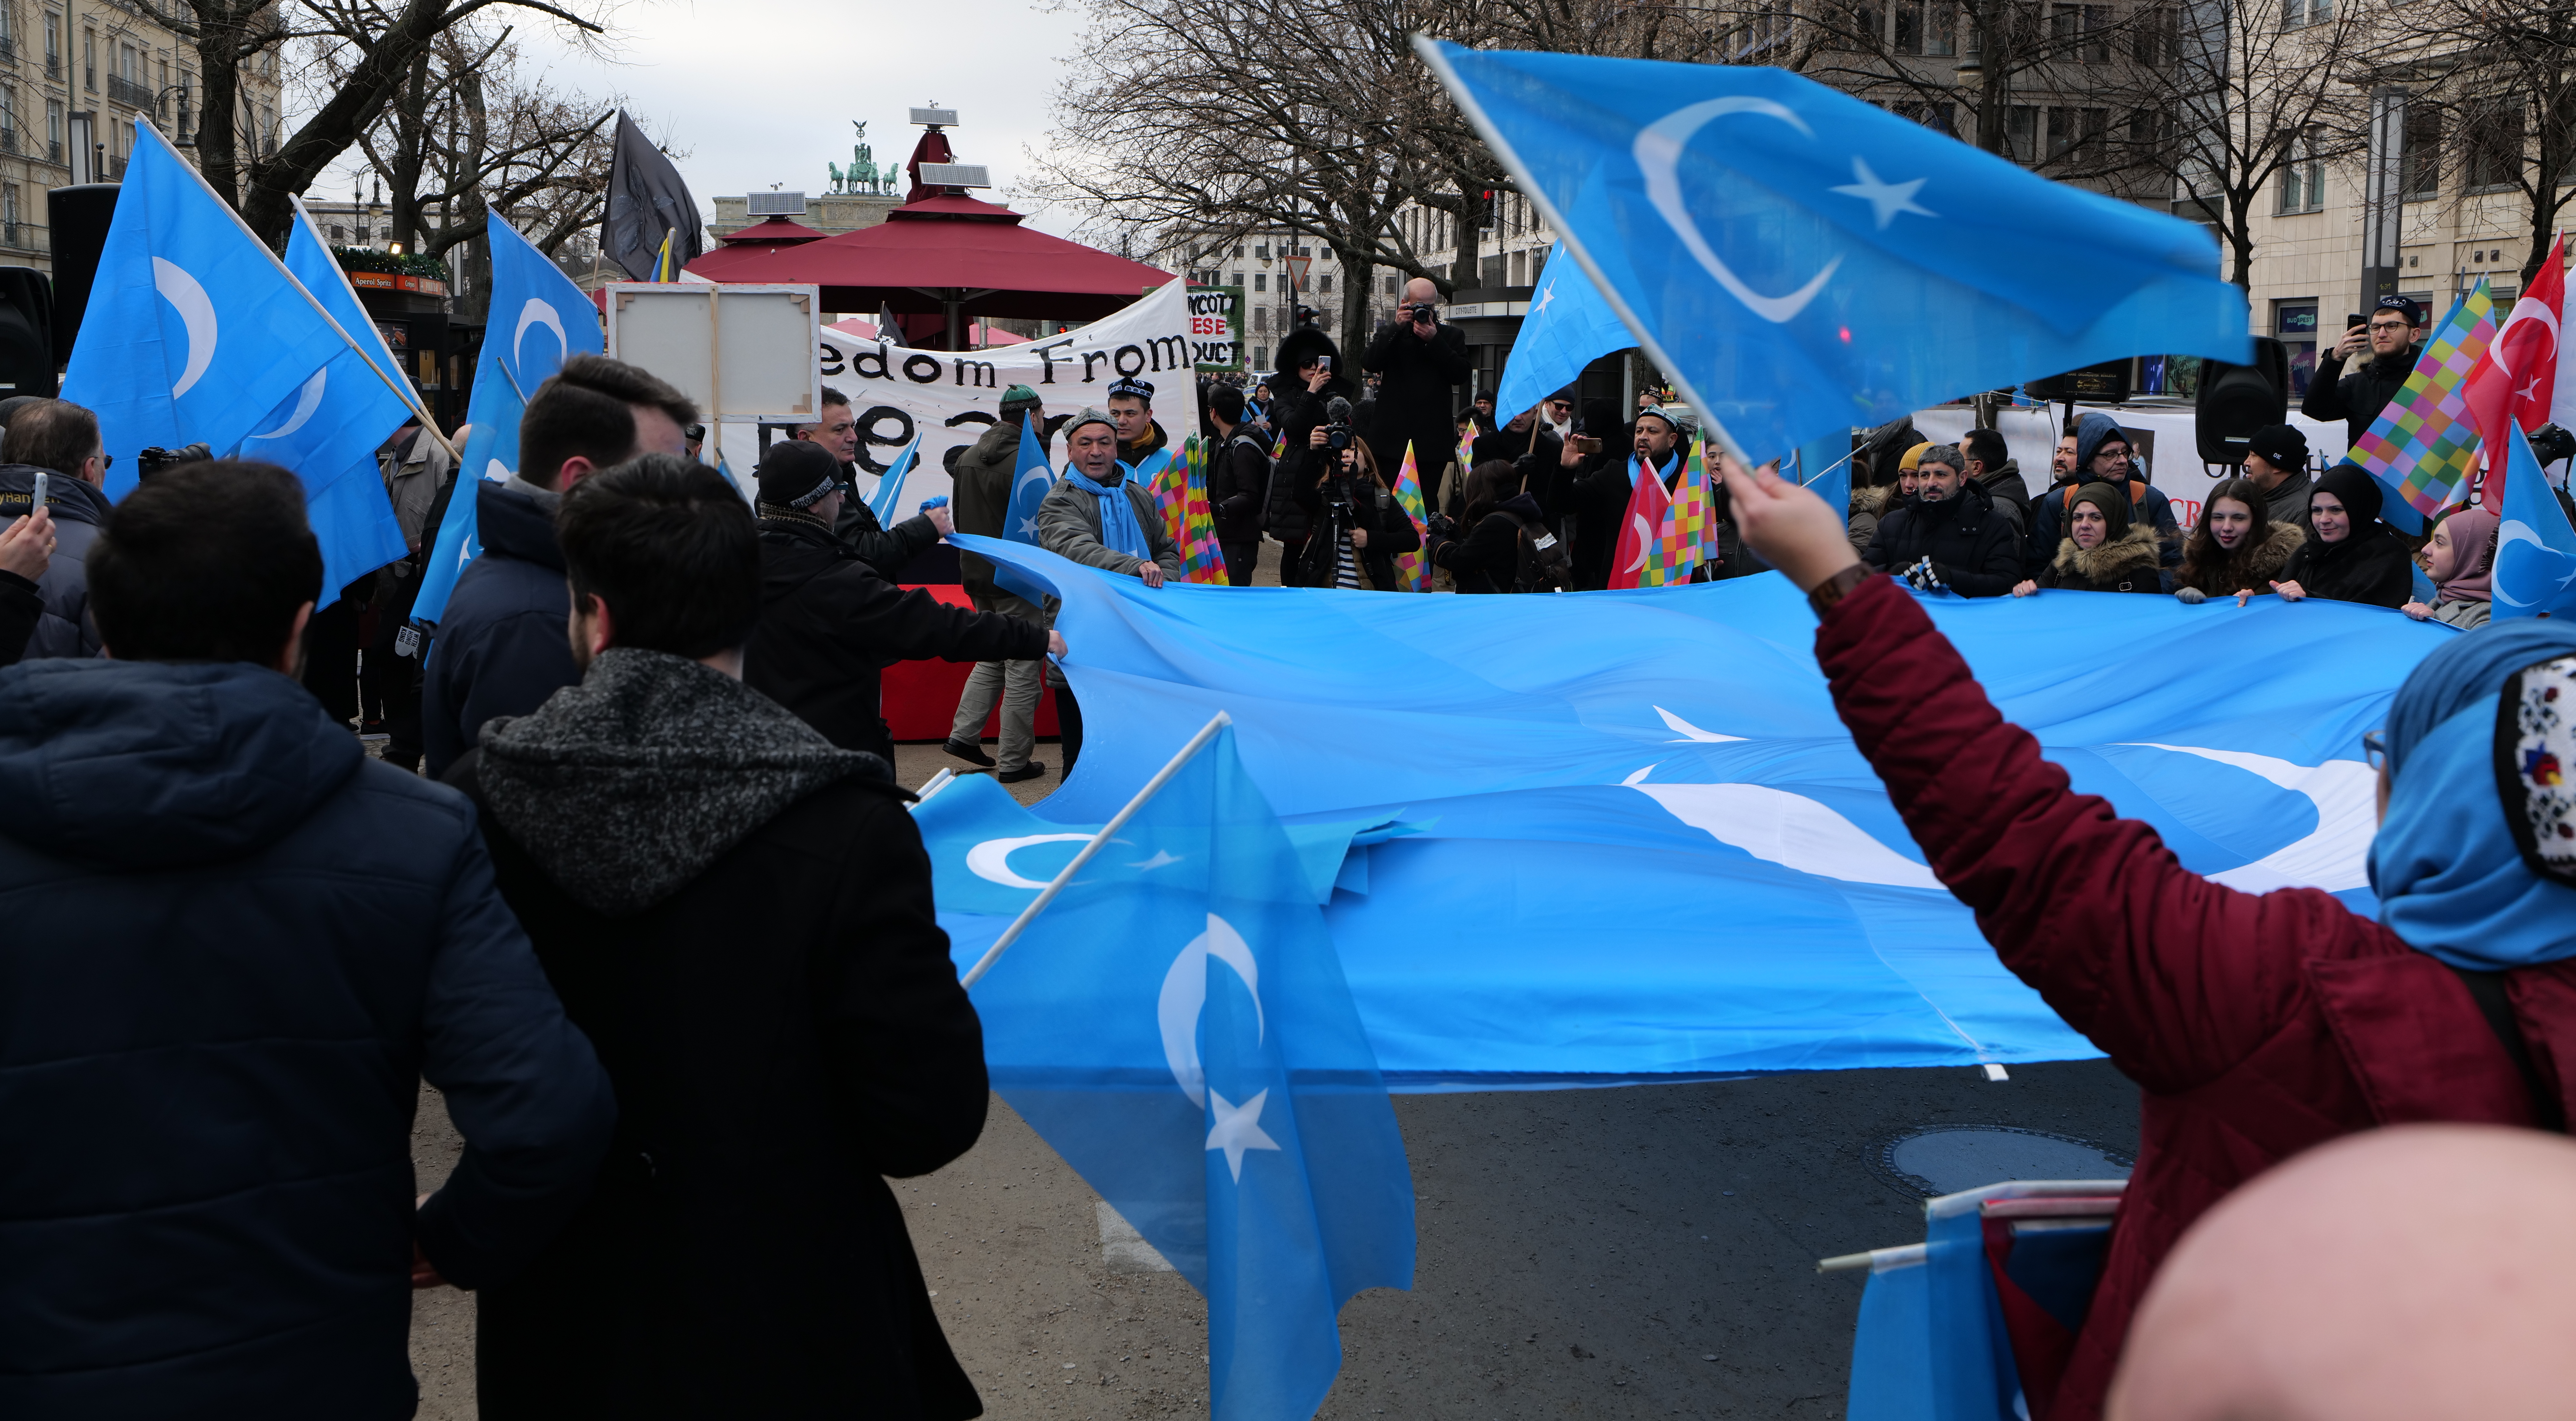 UK lawmakers declare China's treatment of Uyghurs genocide